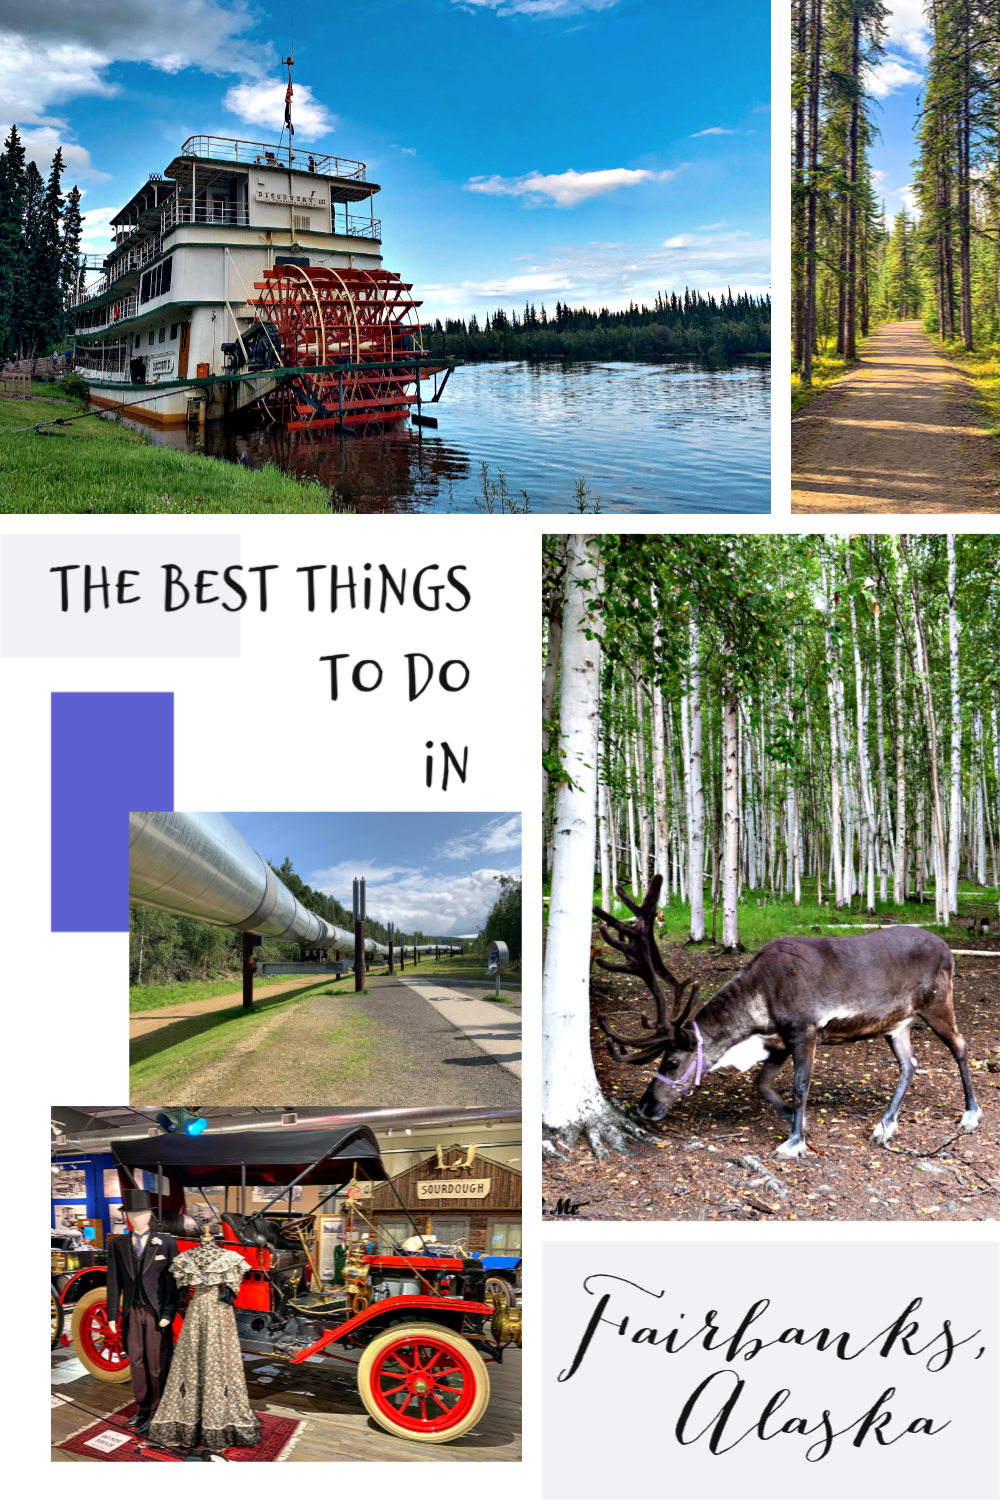 A visit to Fairbanks can be the perfect introduction to Alaska. In Fairbanks you can learn all about what makes Alaska special. Read on for fun things to do in Fairbanks. Alaska. #Alaskatravels #thingstodoinAlaska